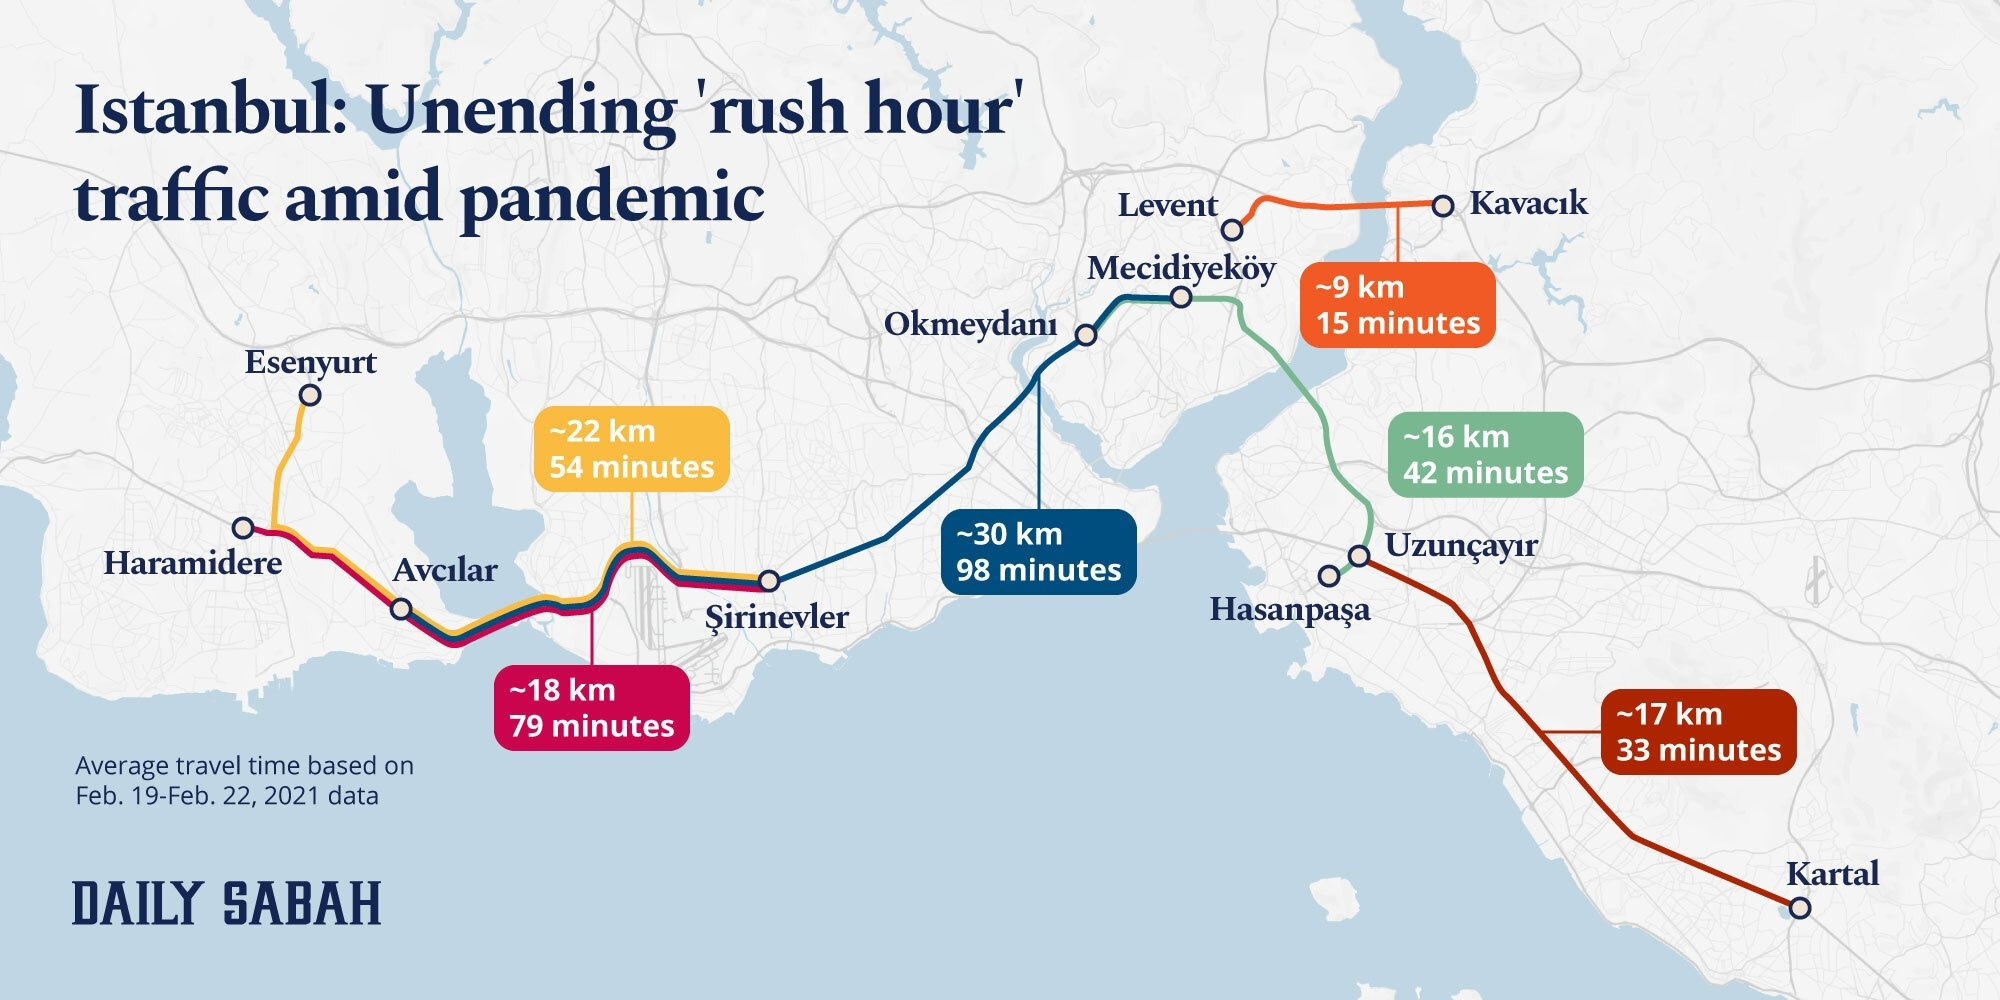 An infographic showing the travel times in the morning and evening